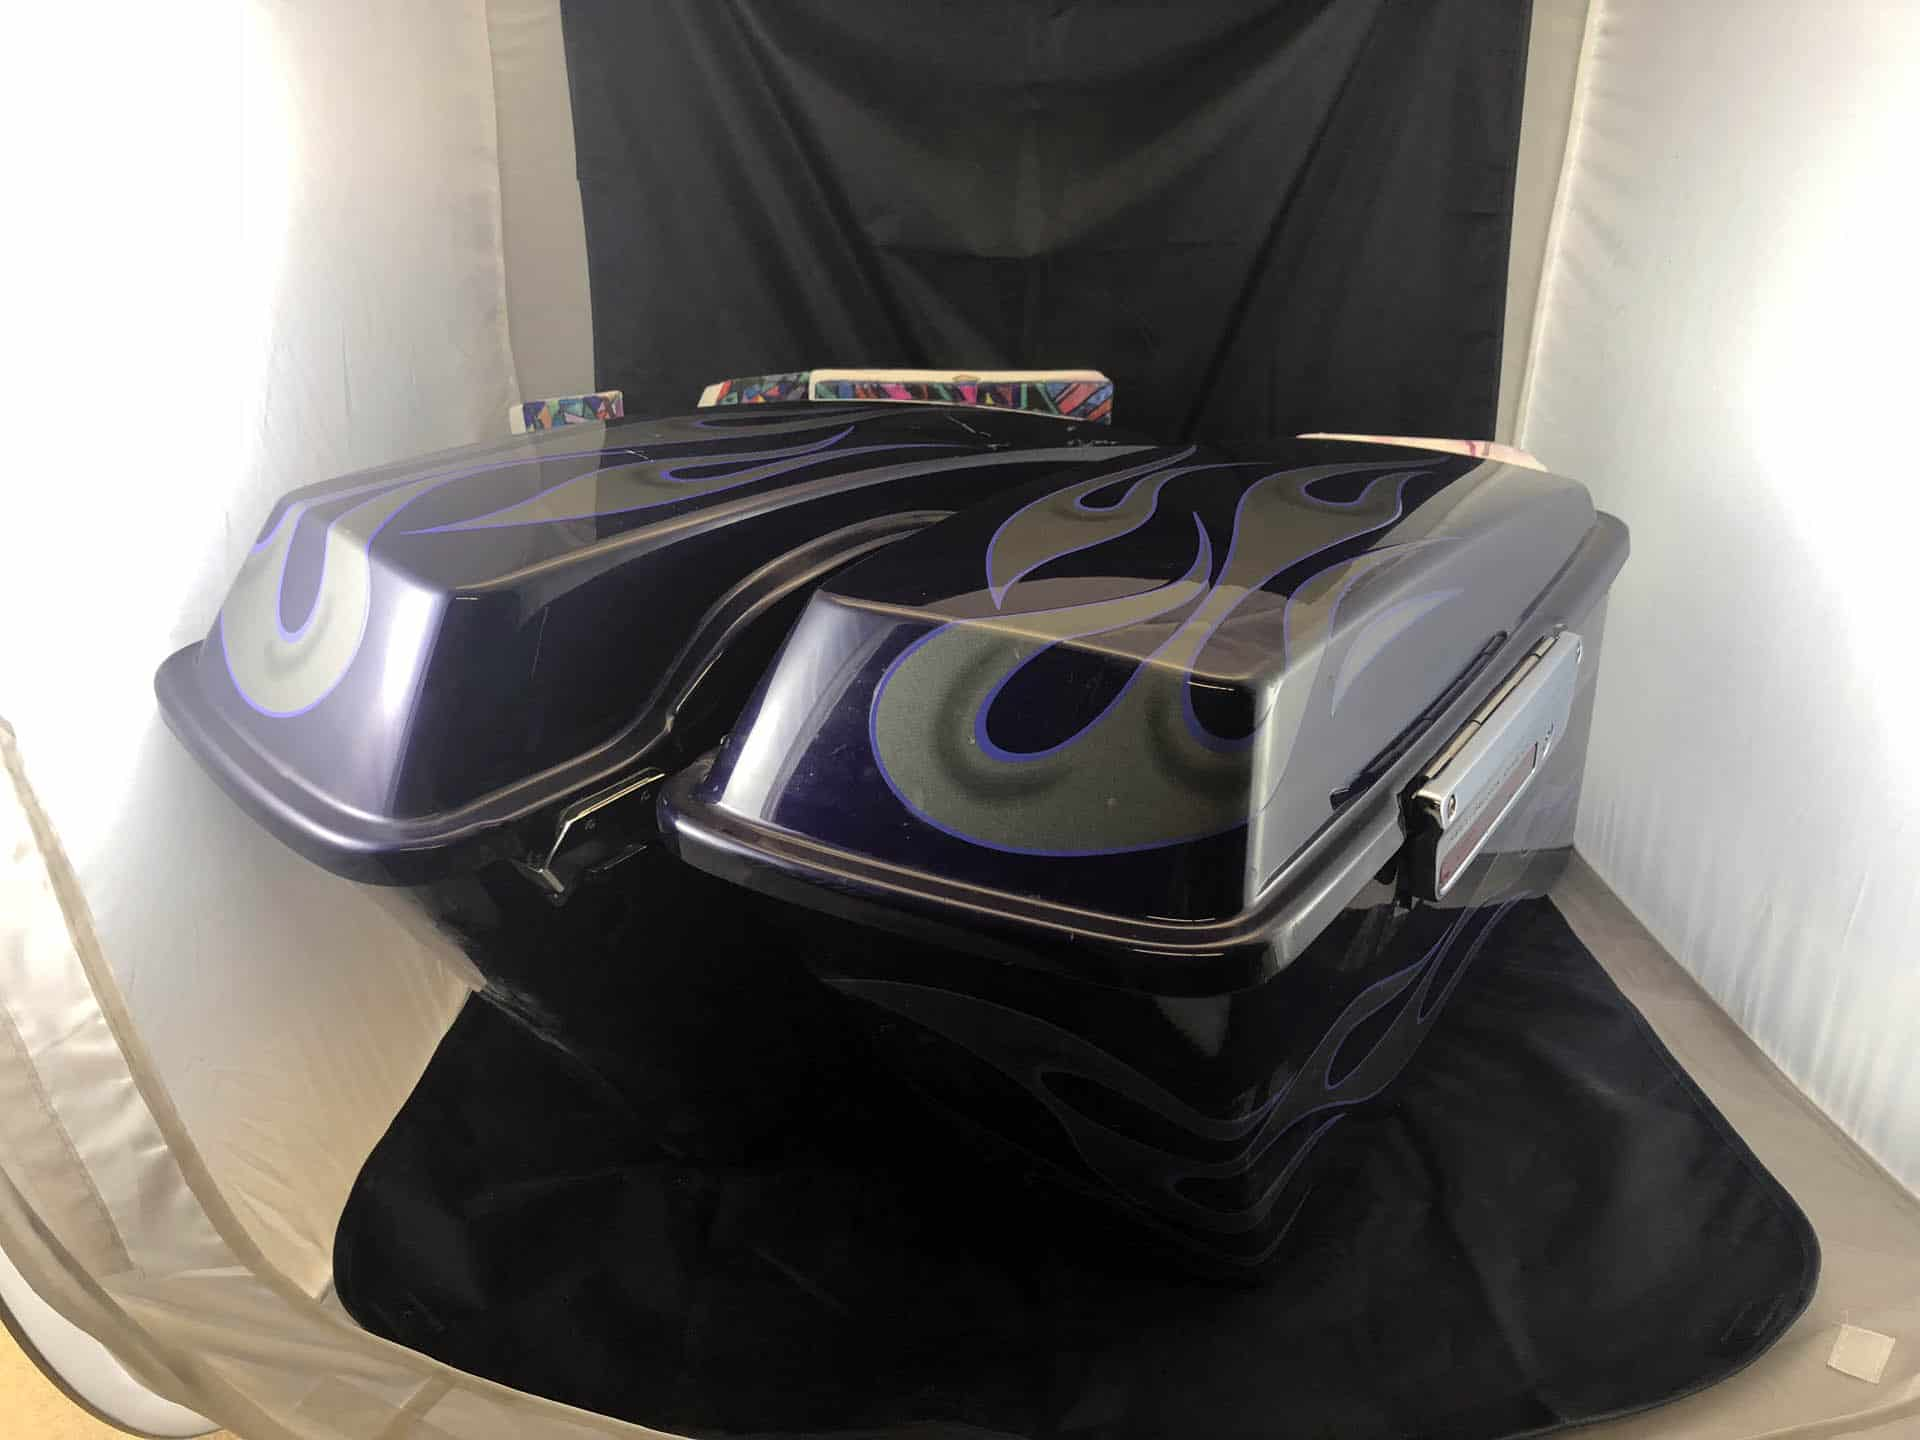 Used Saddlebag Set Purple with Flames Featured Image